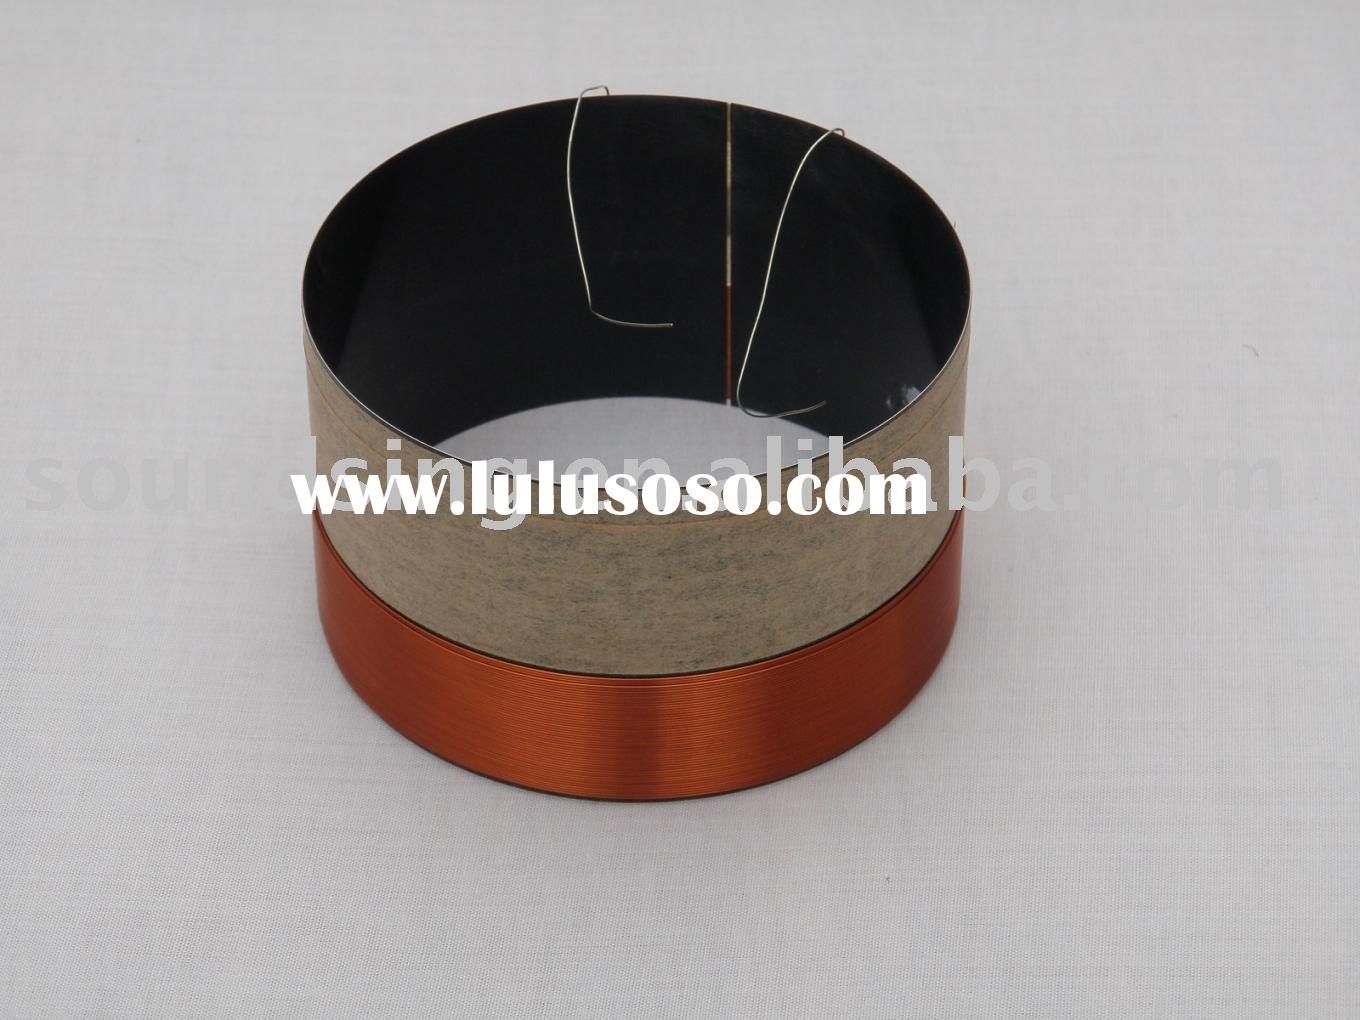 speaker accessories(voice coil ,speaker parts)